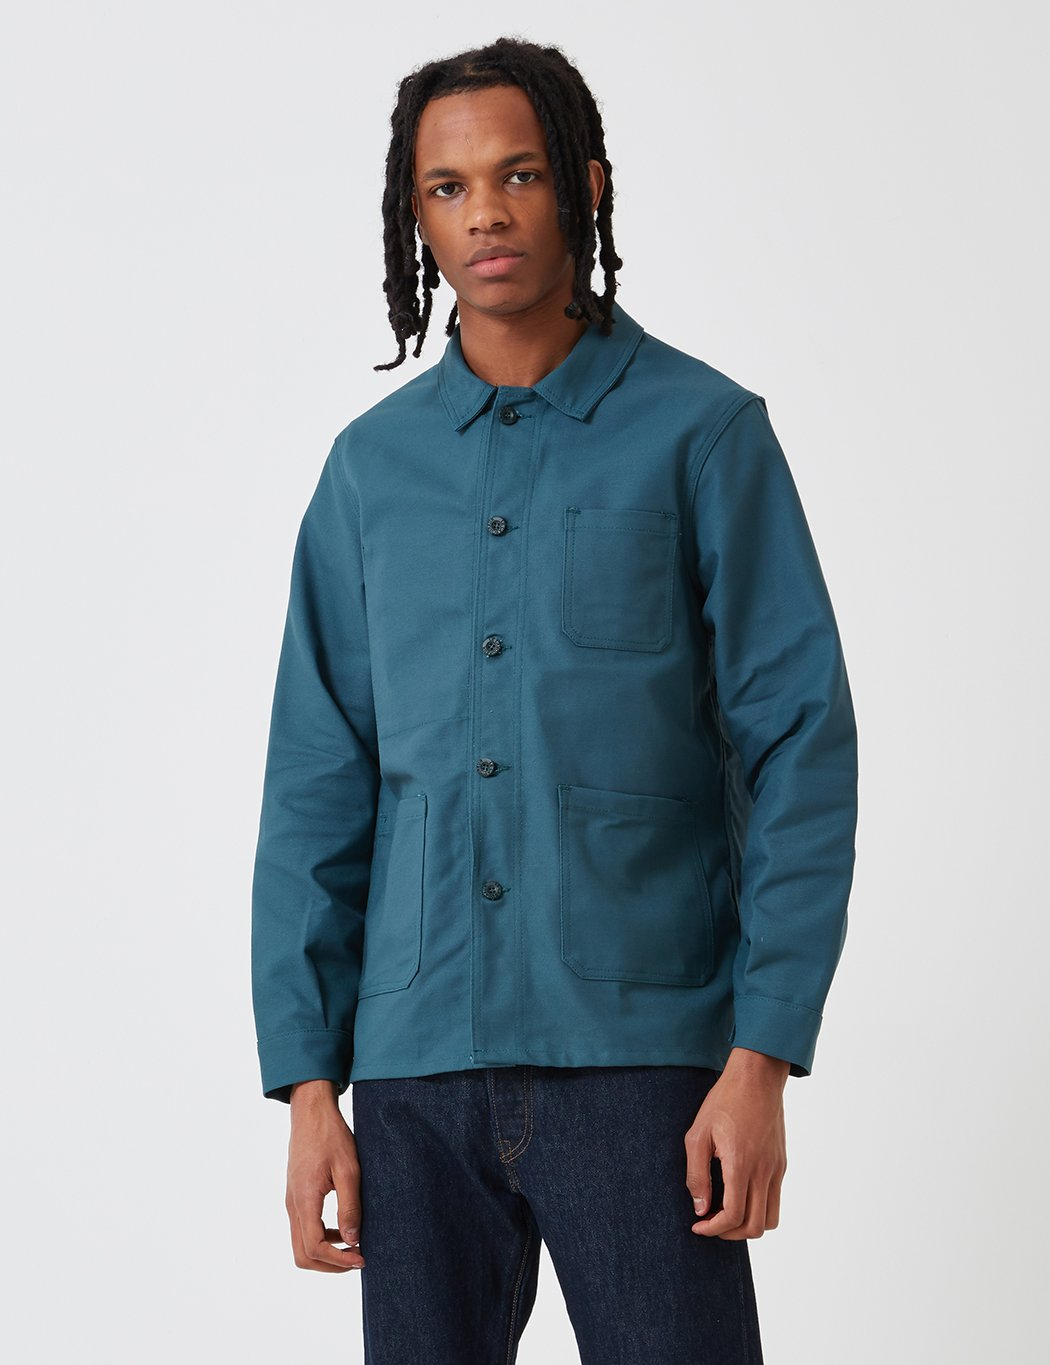 Le Laboureur Cotton Drill Arbeitsjacke - Forest Green